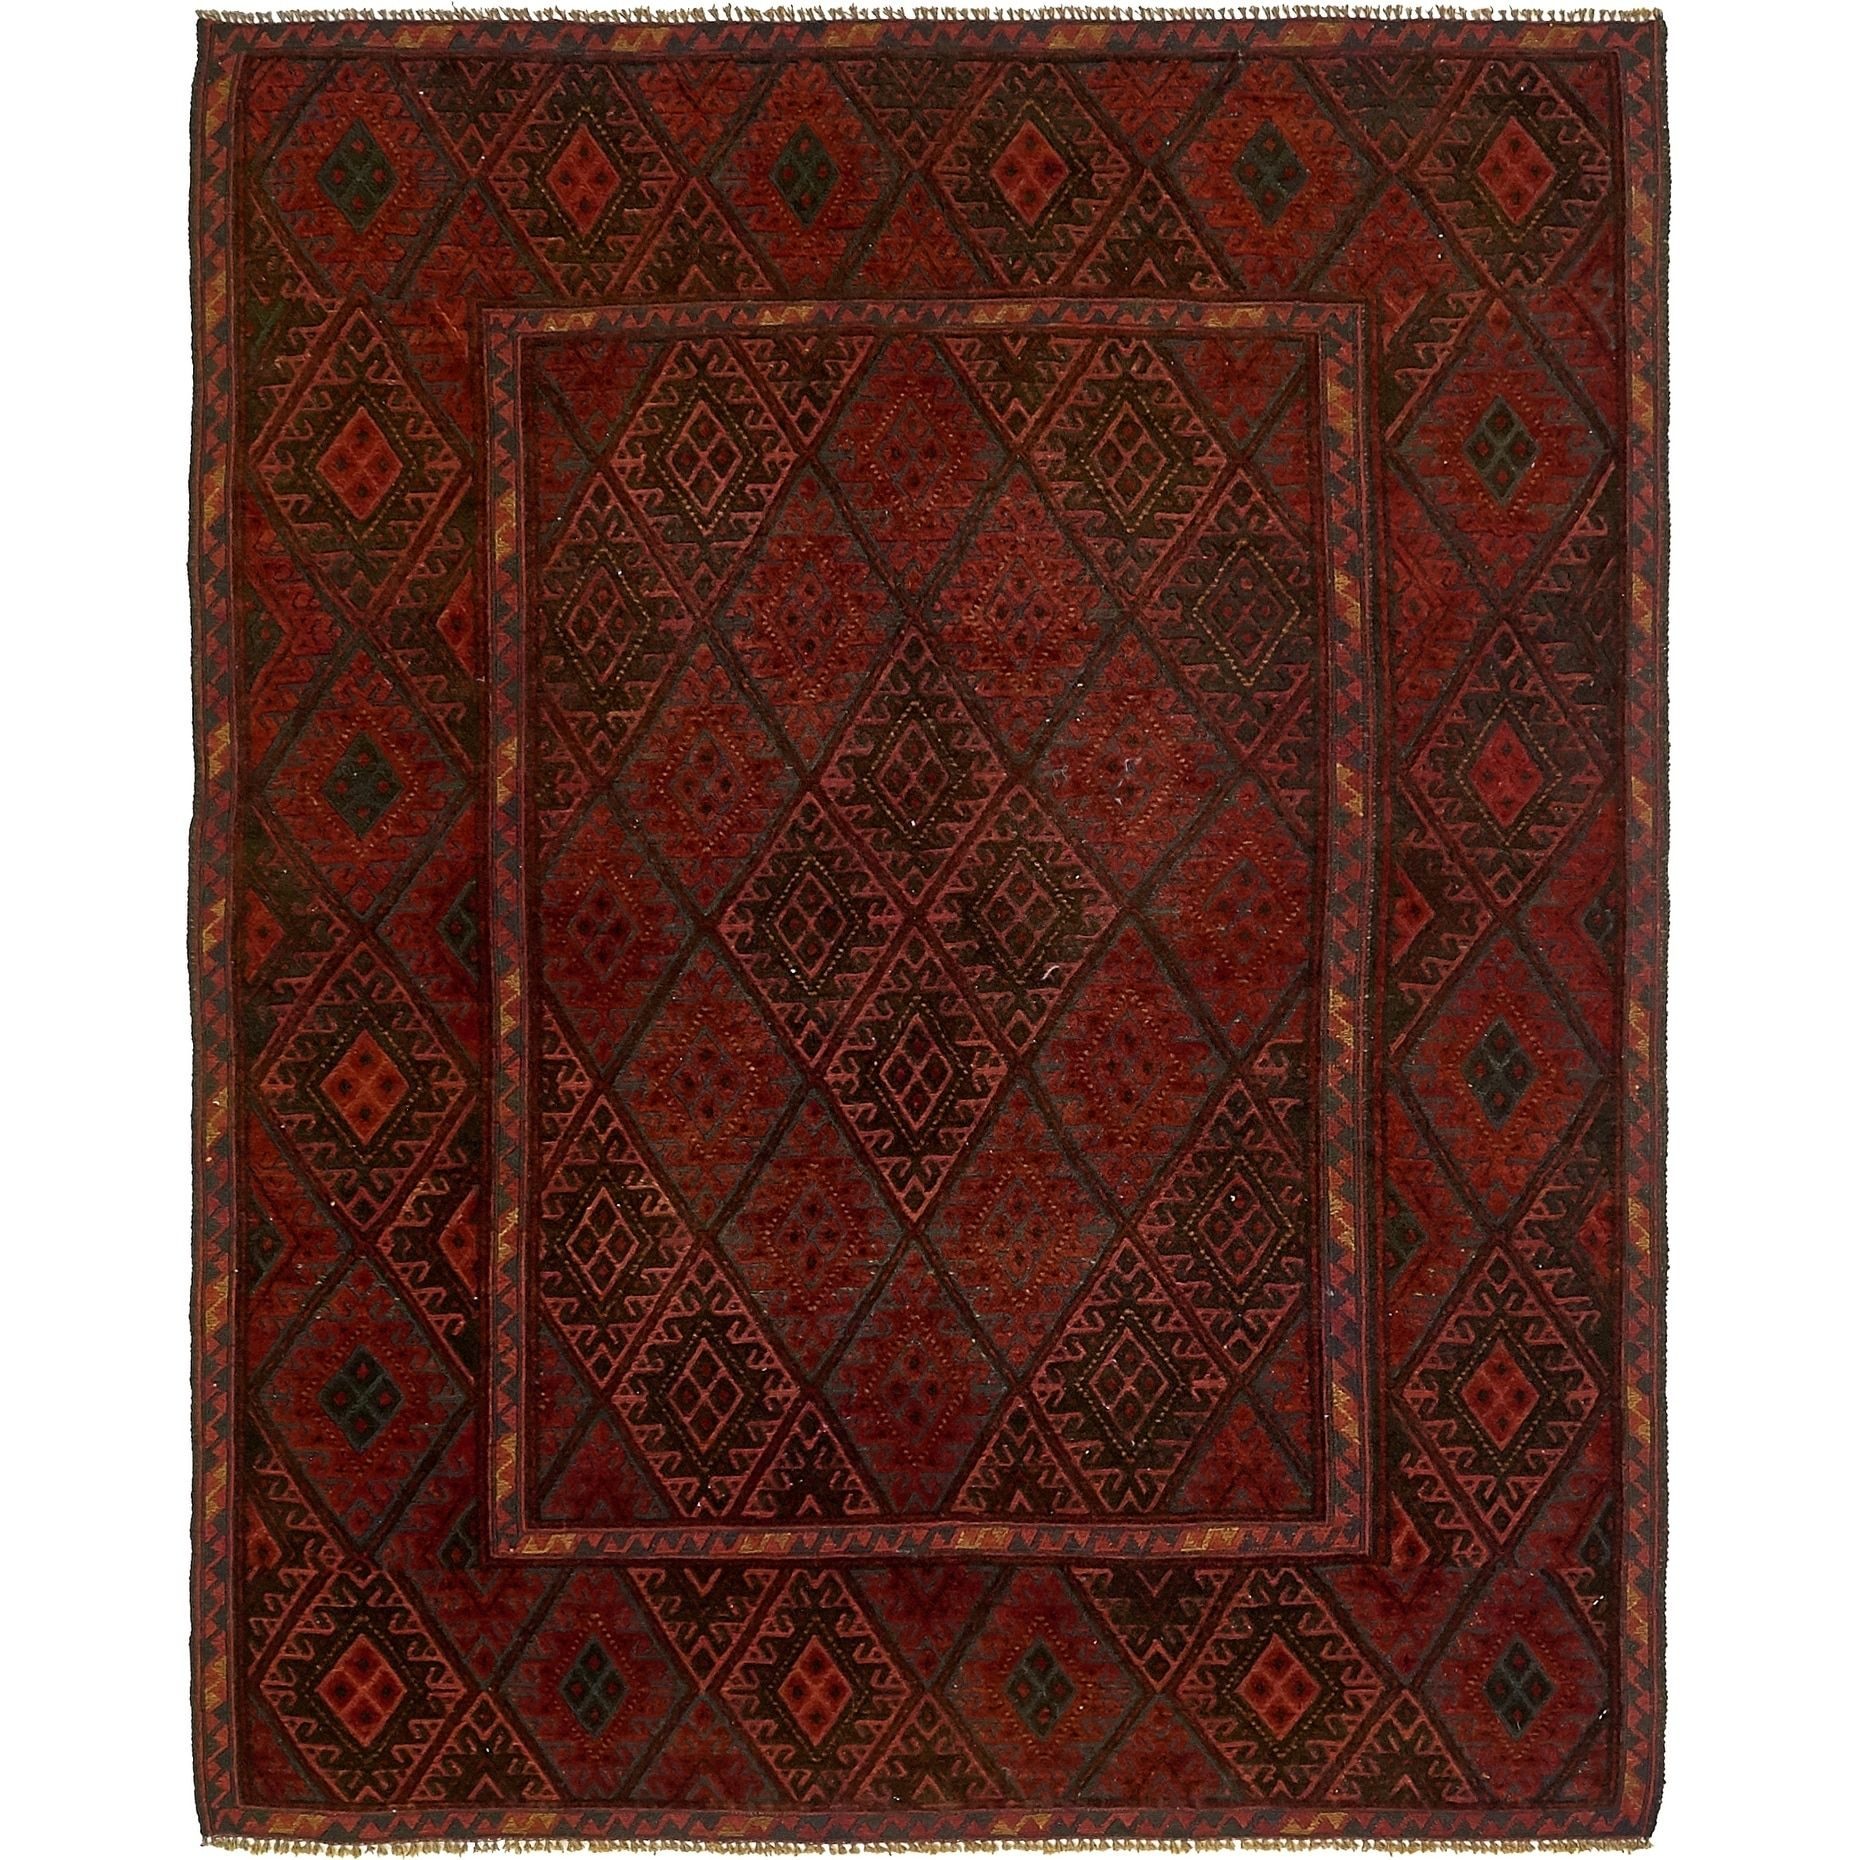 Refurbished Hand Knotted Sumak Wool Area Rug 5 X 6 2 Red 5